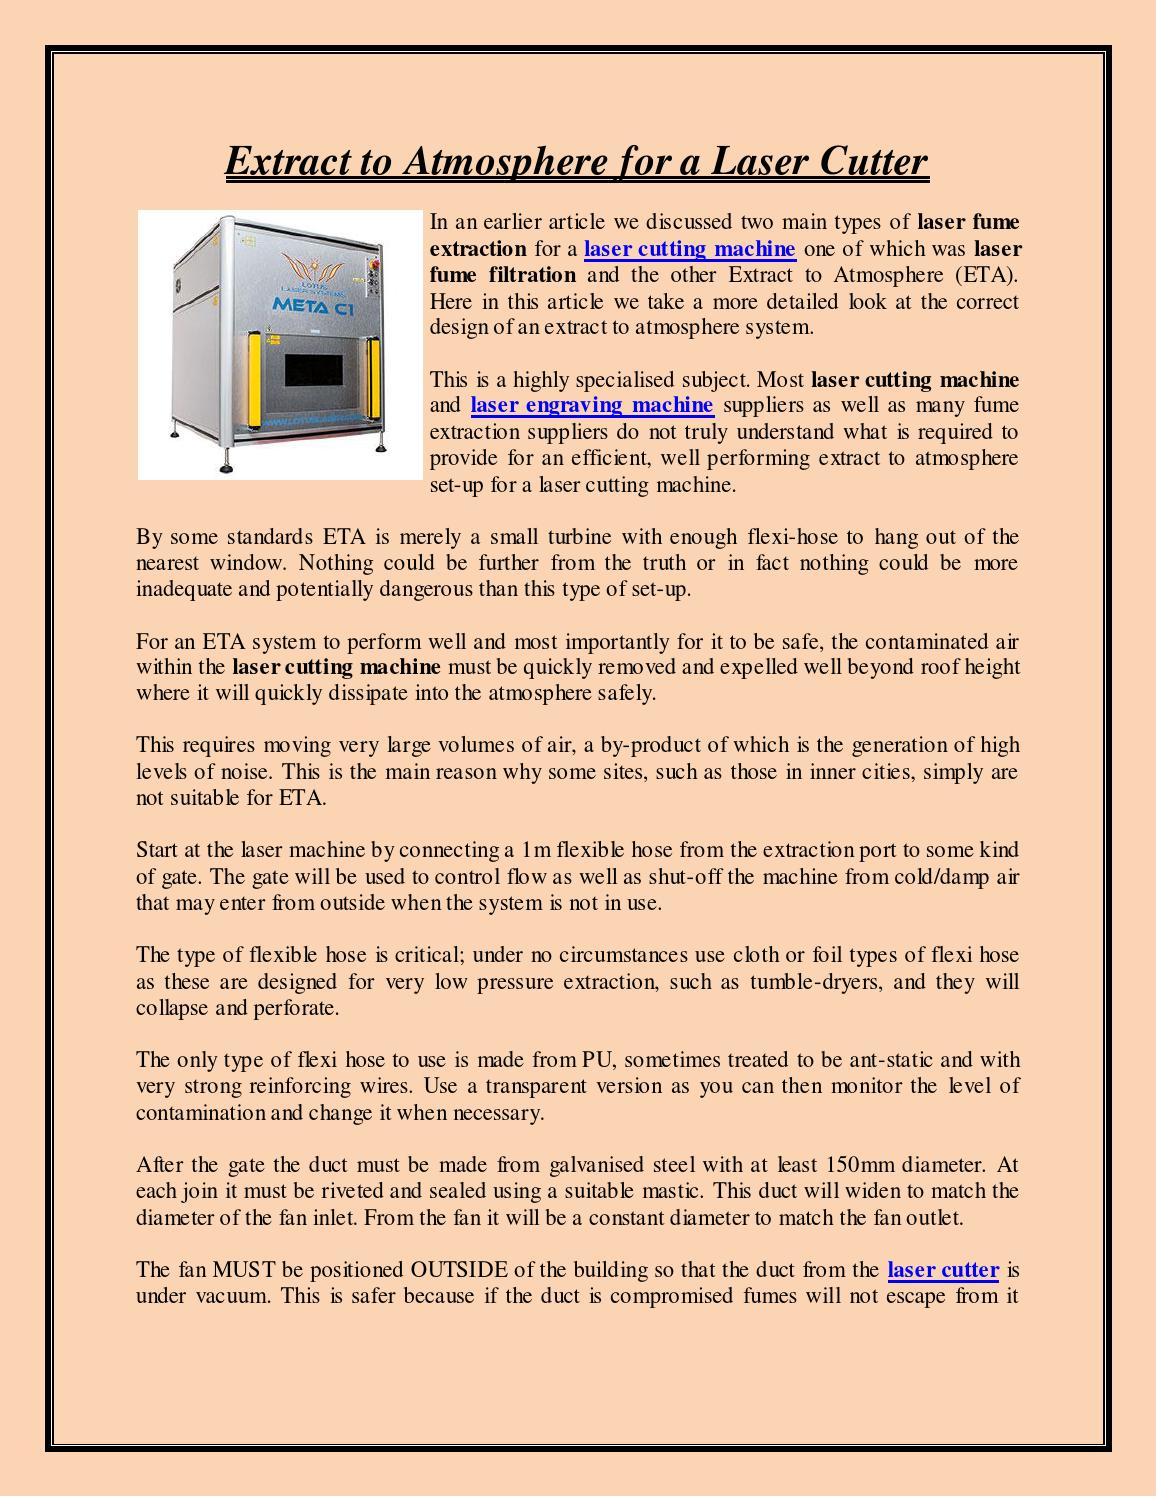 Extract to atmosphere for a laser cutter by Laser Cutter - issuu